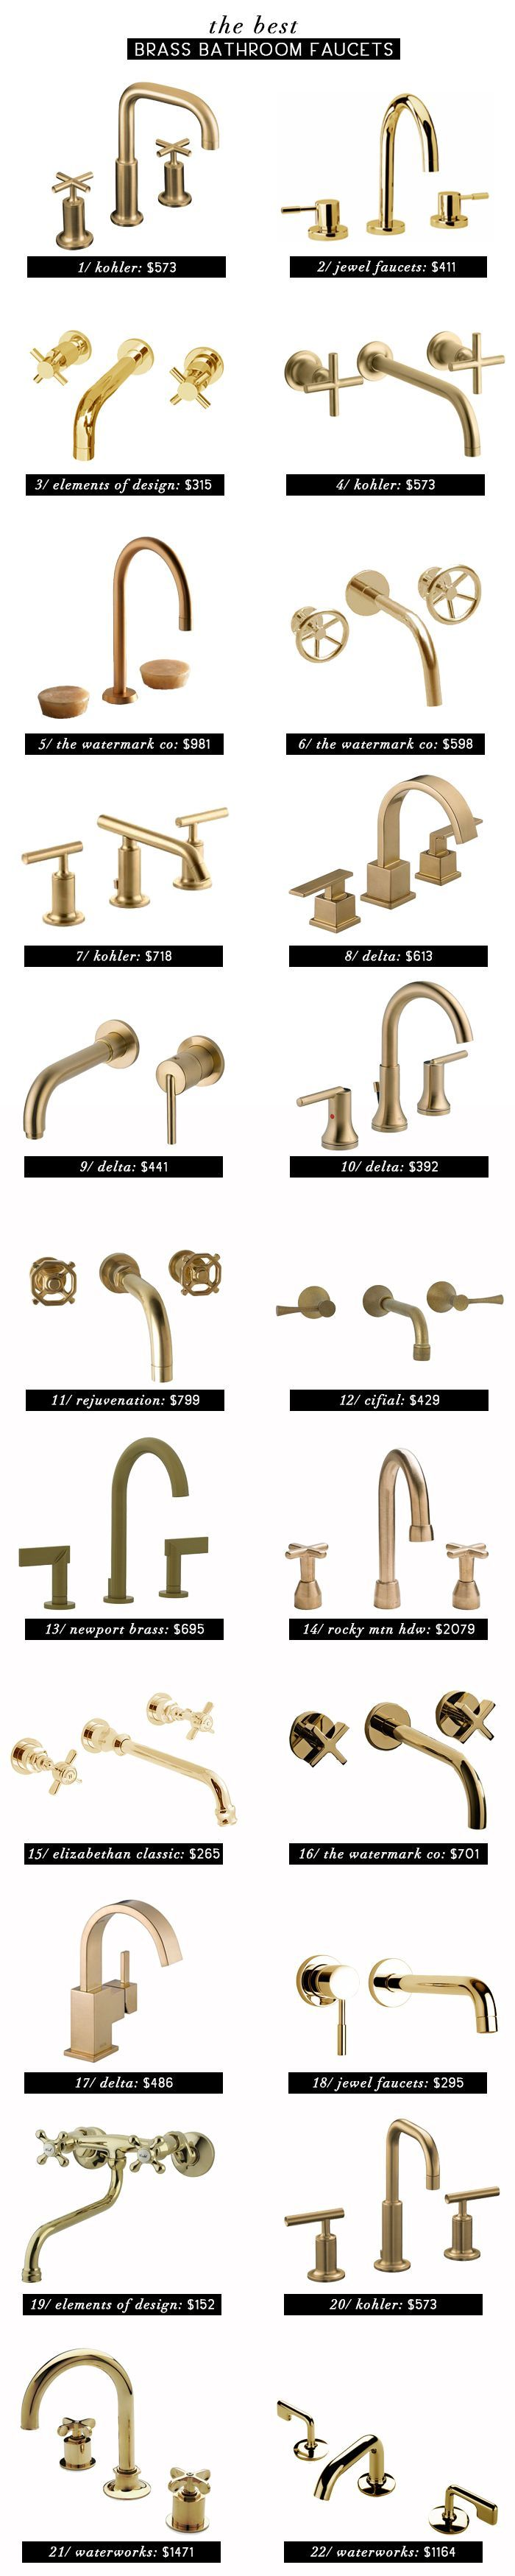 Emily Henderson_Best Brass Faucets_Roundup